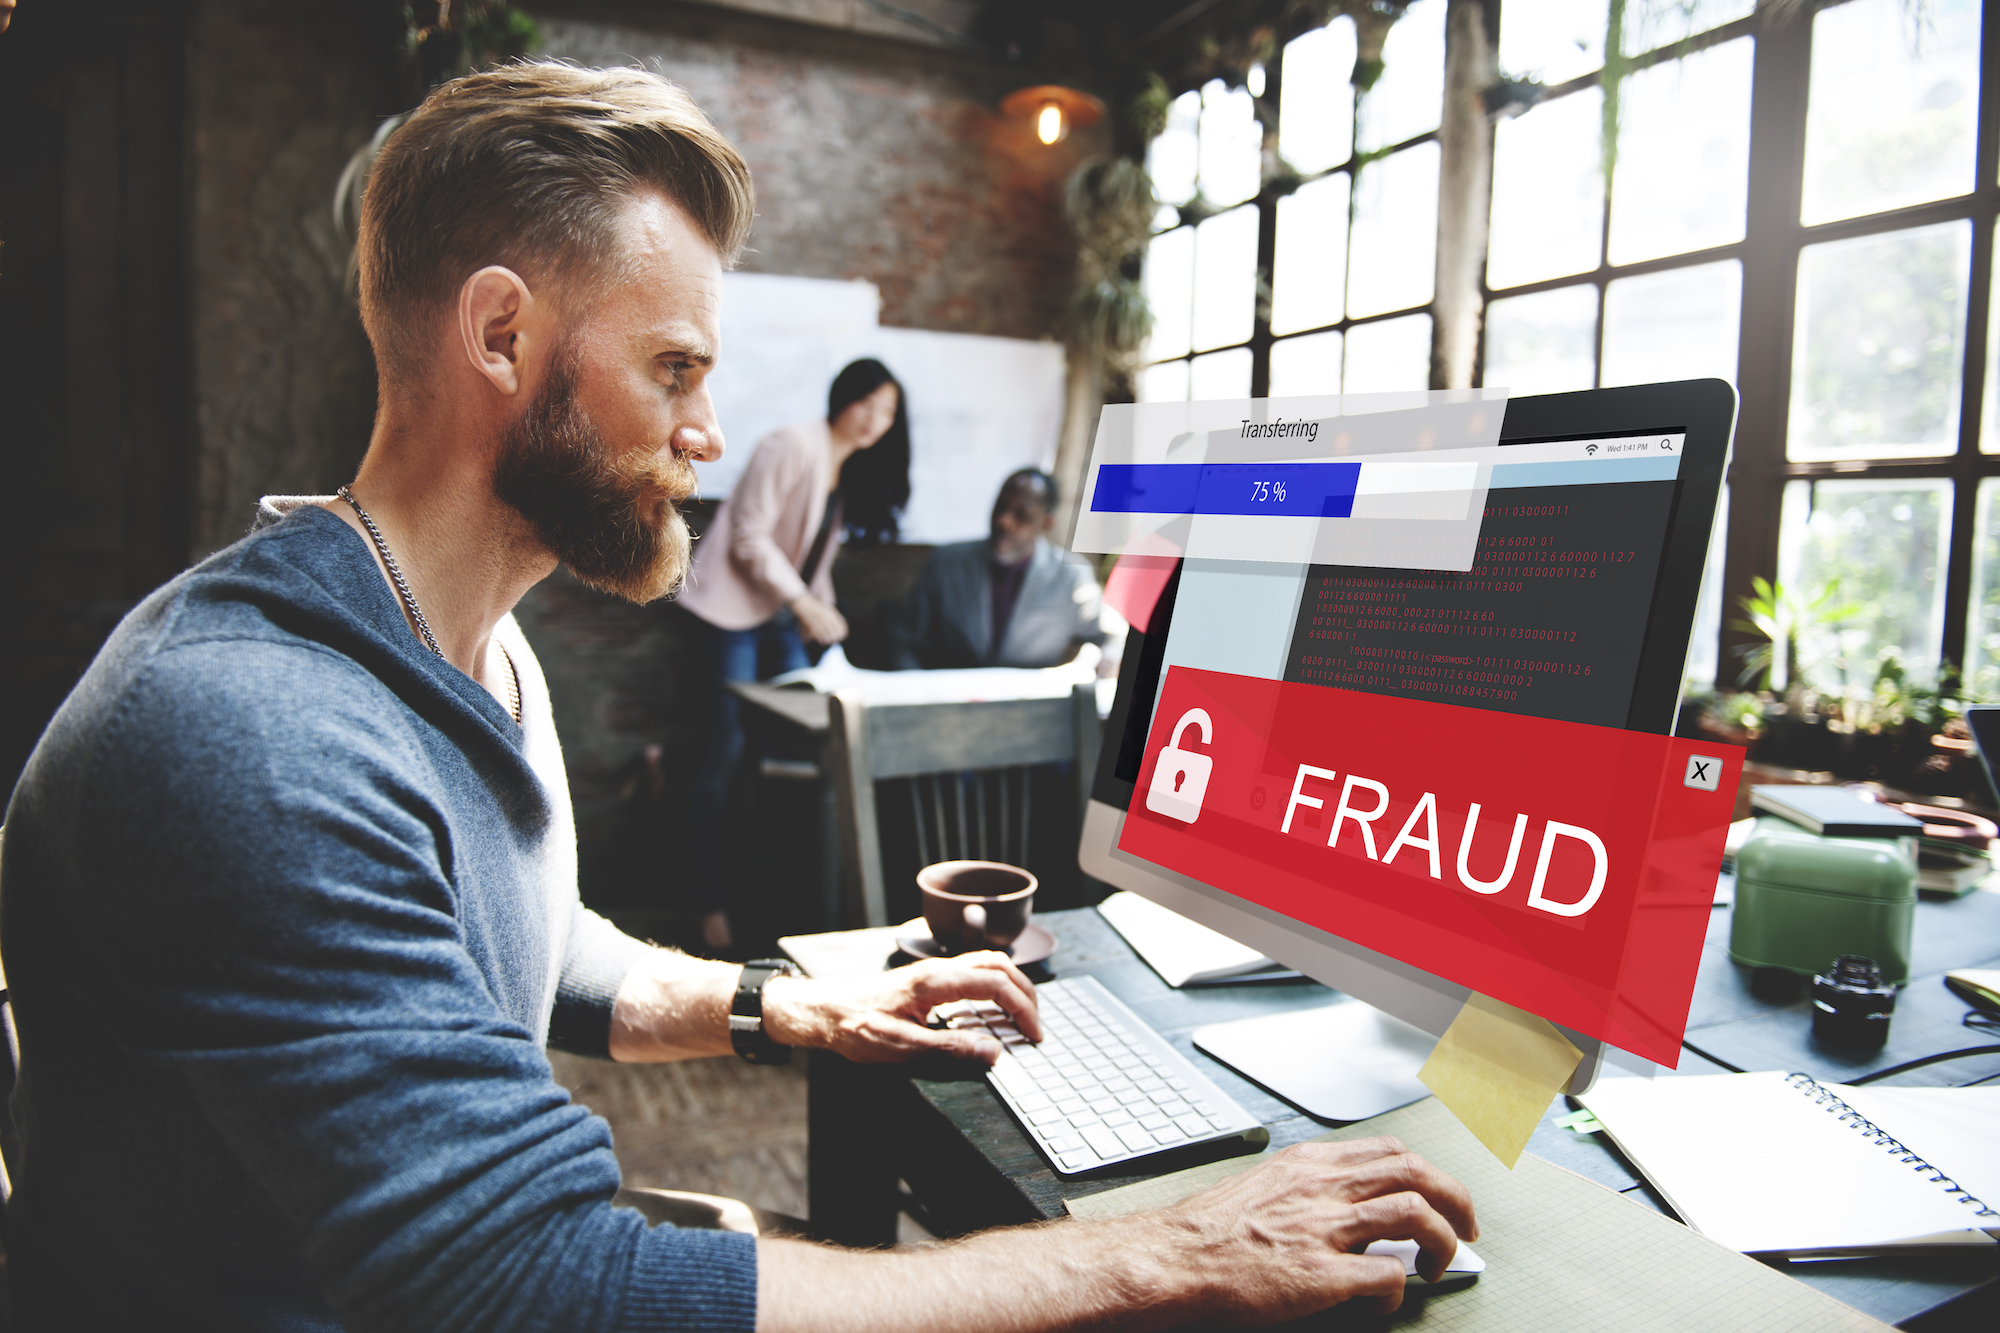 Fighting Fraud Report 2020